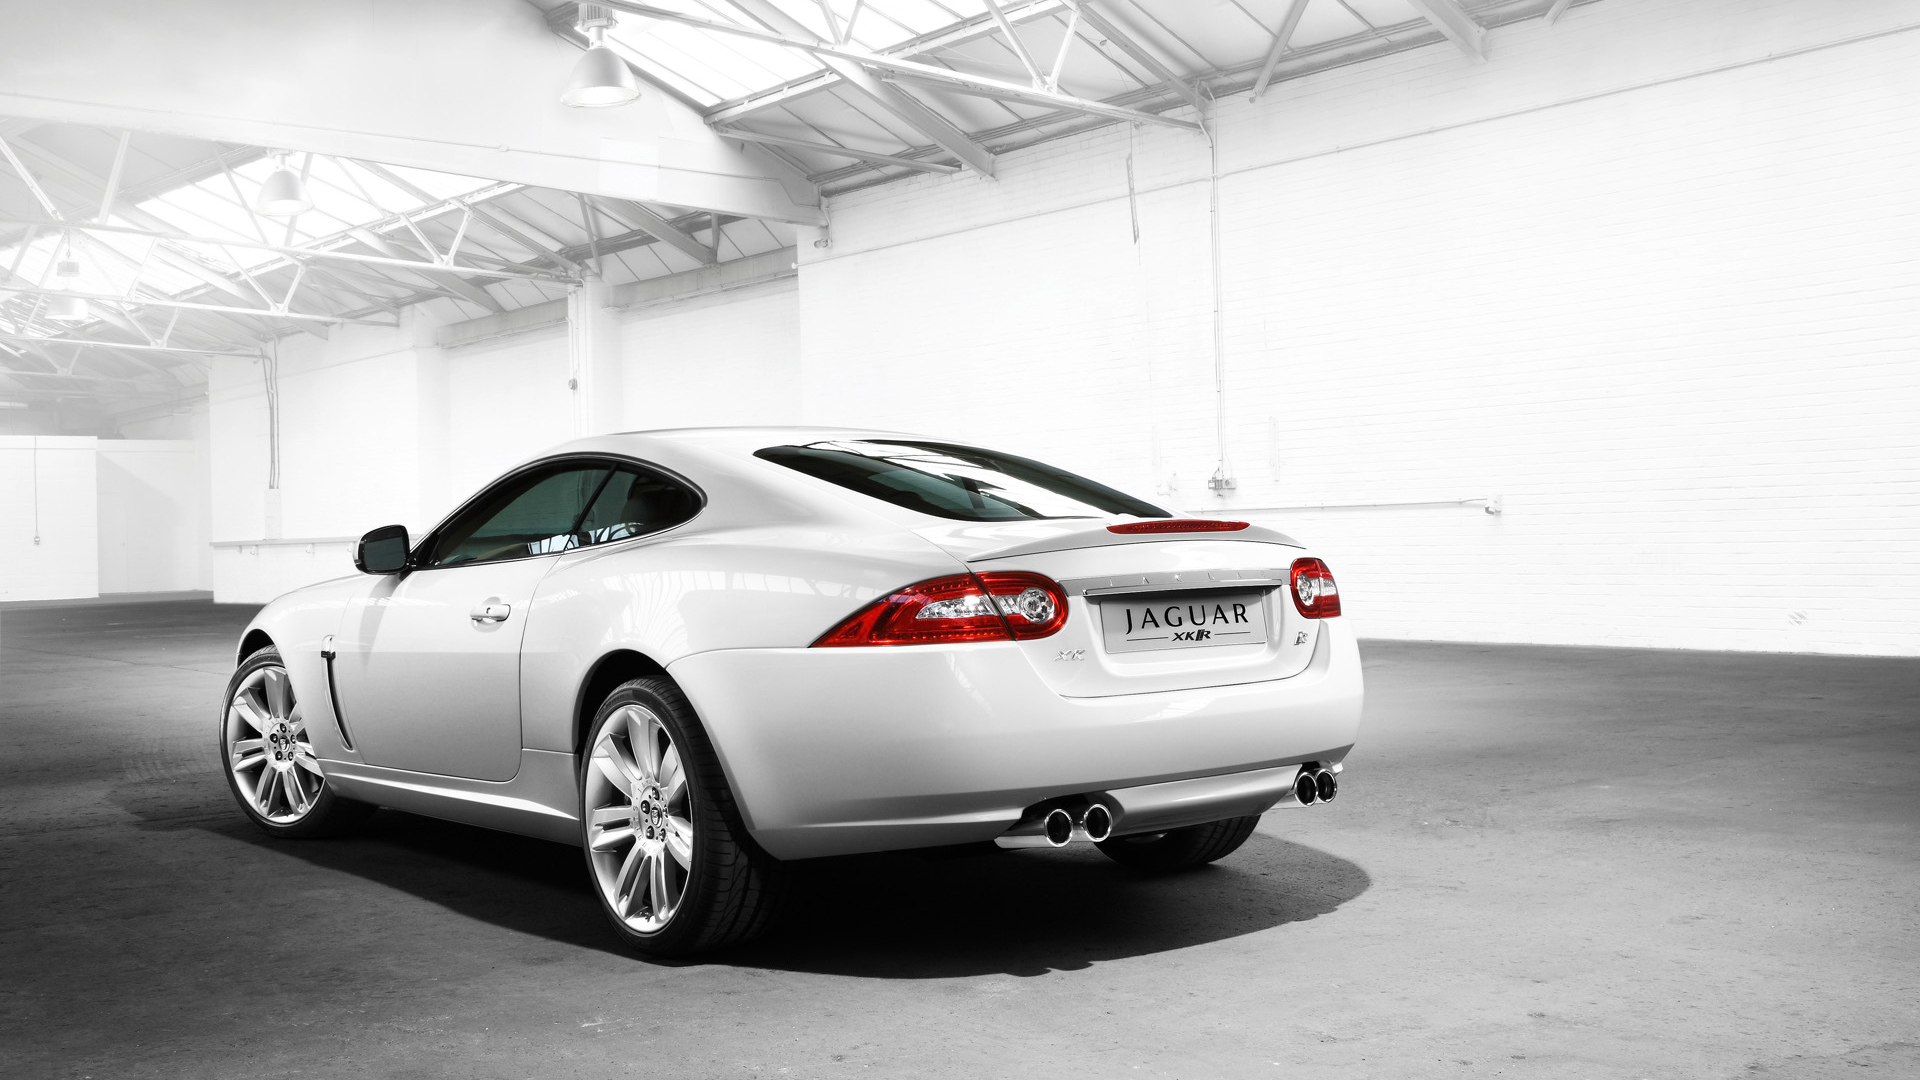 Jaguar Car Wallpapers-1080p